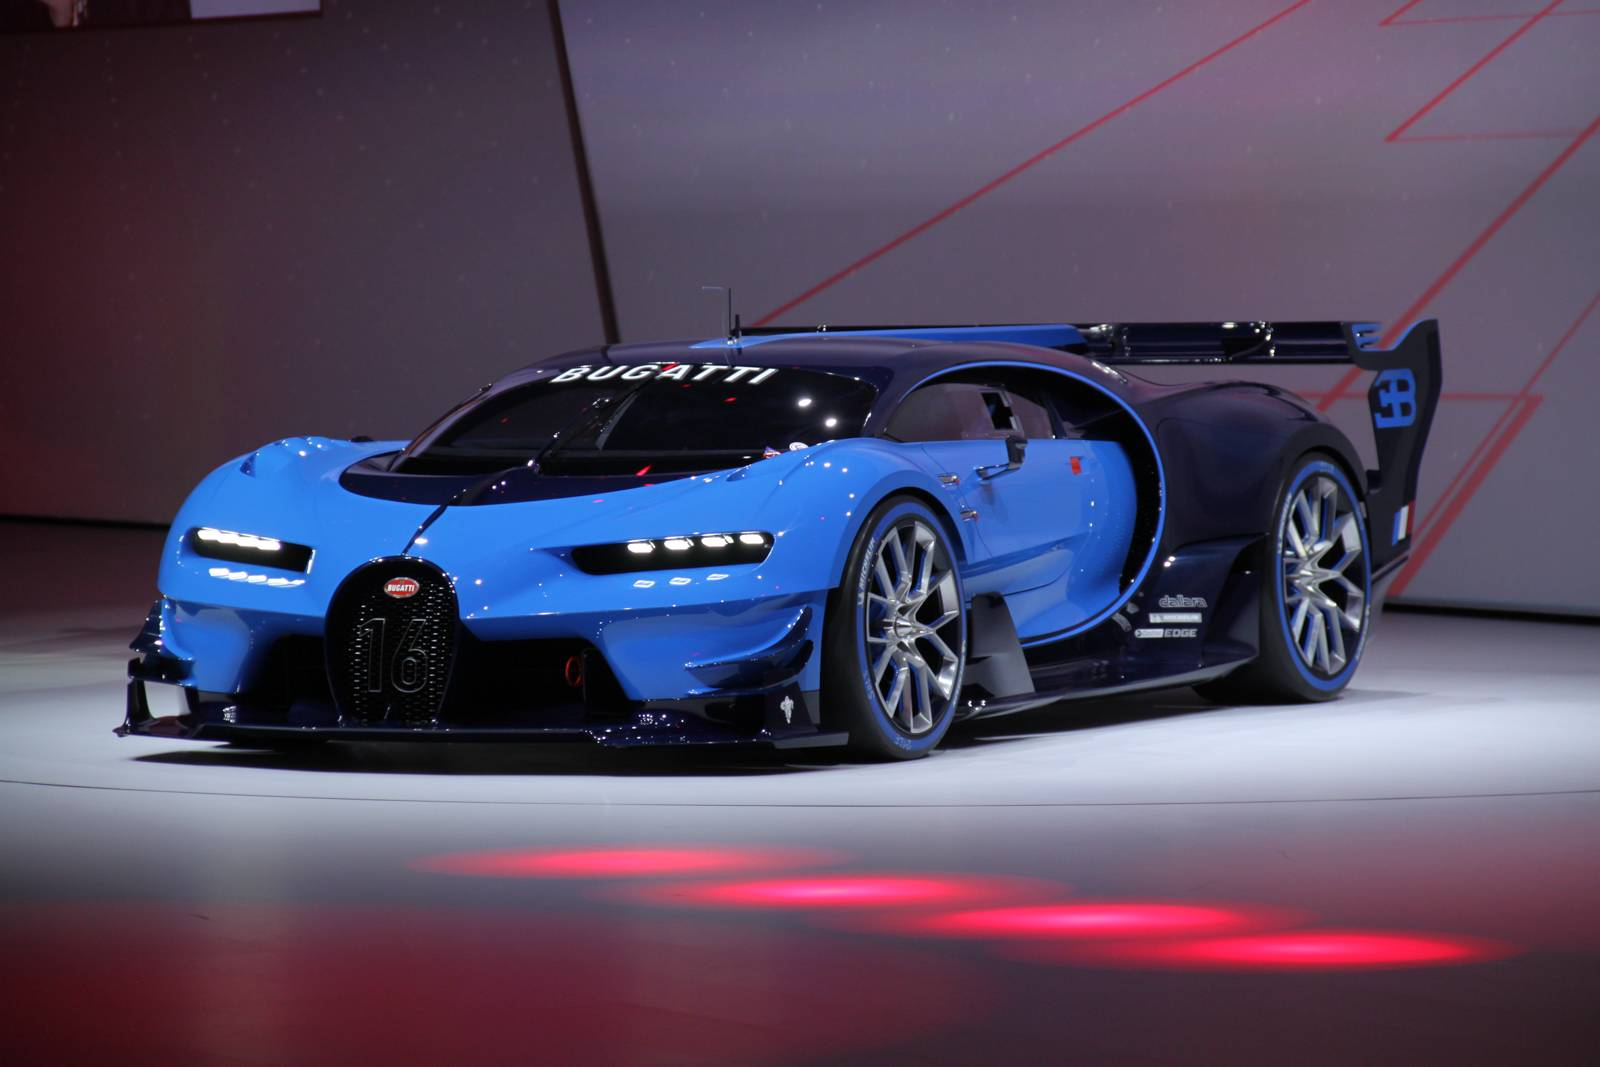 Video: Making the Bugatti Vision Gran Turismo - GTspirit on 2017 kia gt, 2017 nissan gt, 2017 shelby mustang gt, 2017 ford gt, 2017 bentley gt,